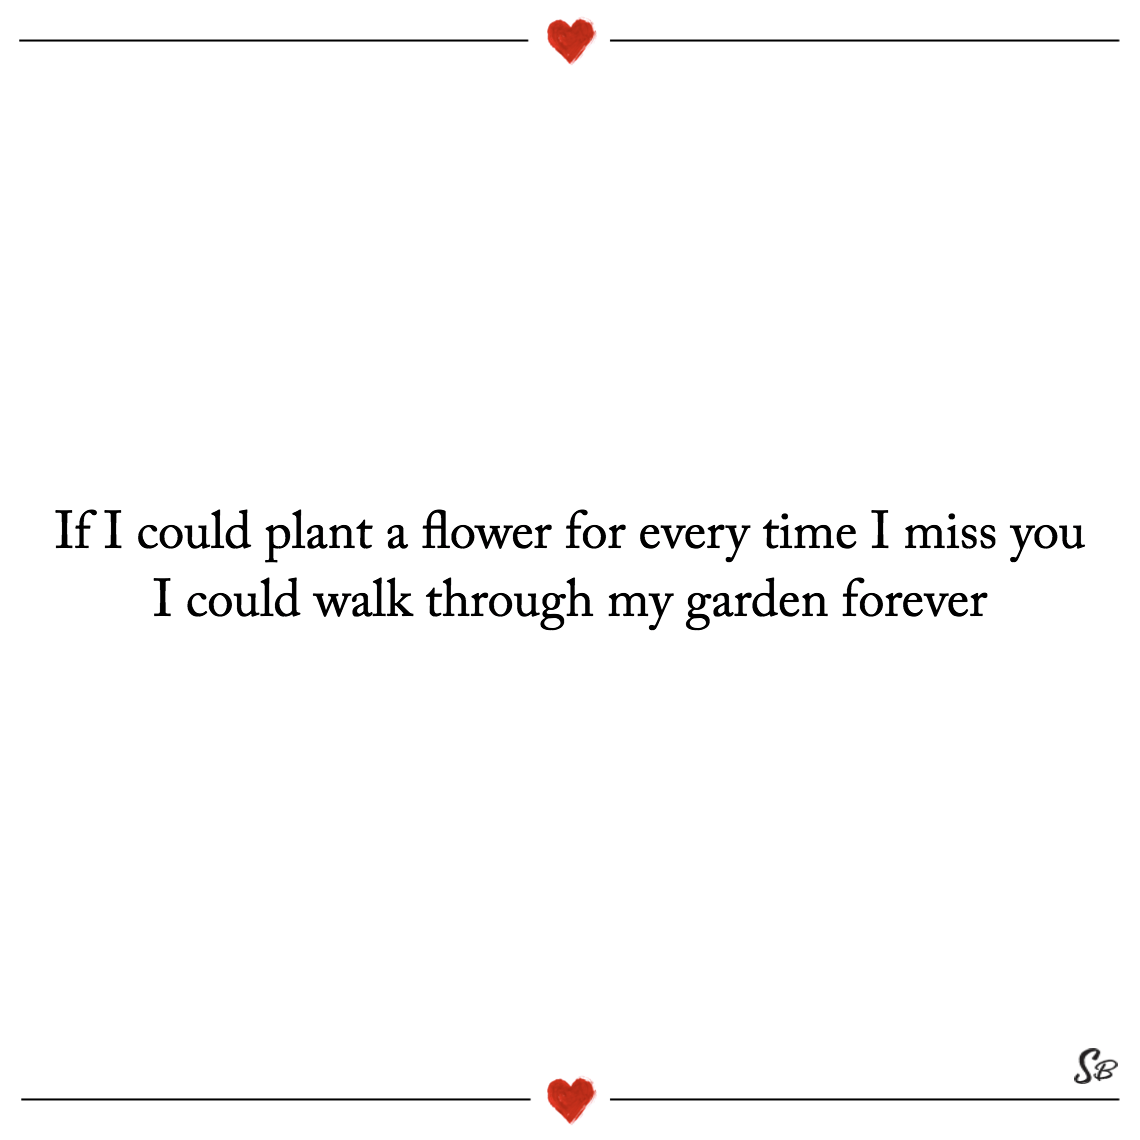 If i could plant a flower for every time i miss you i could walk through my garden forever